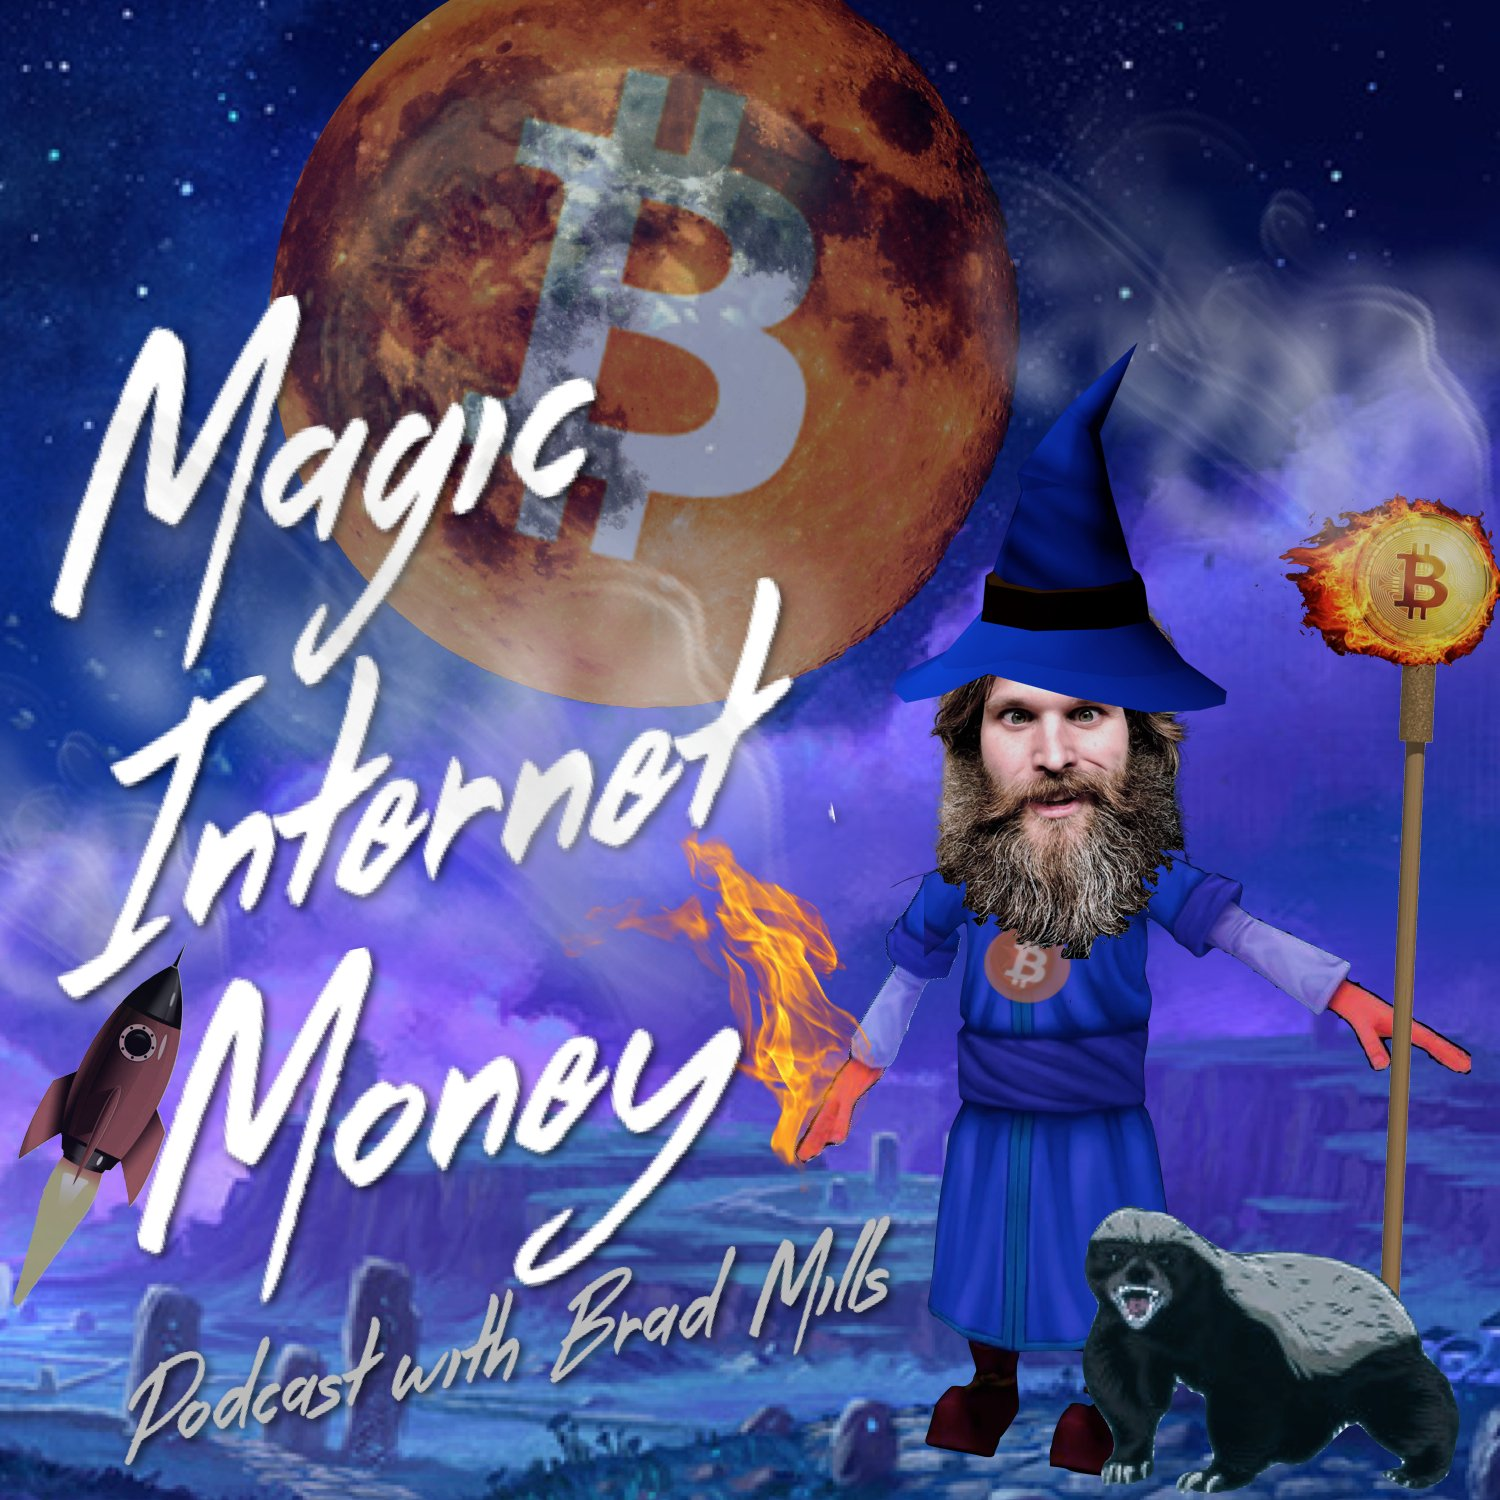 MAGIC INTERNET MONEY